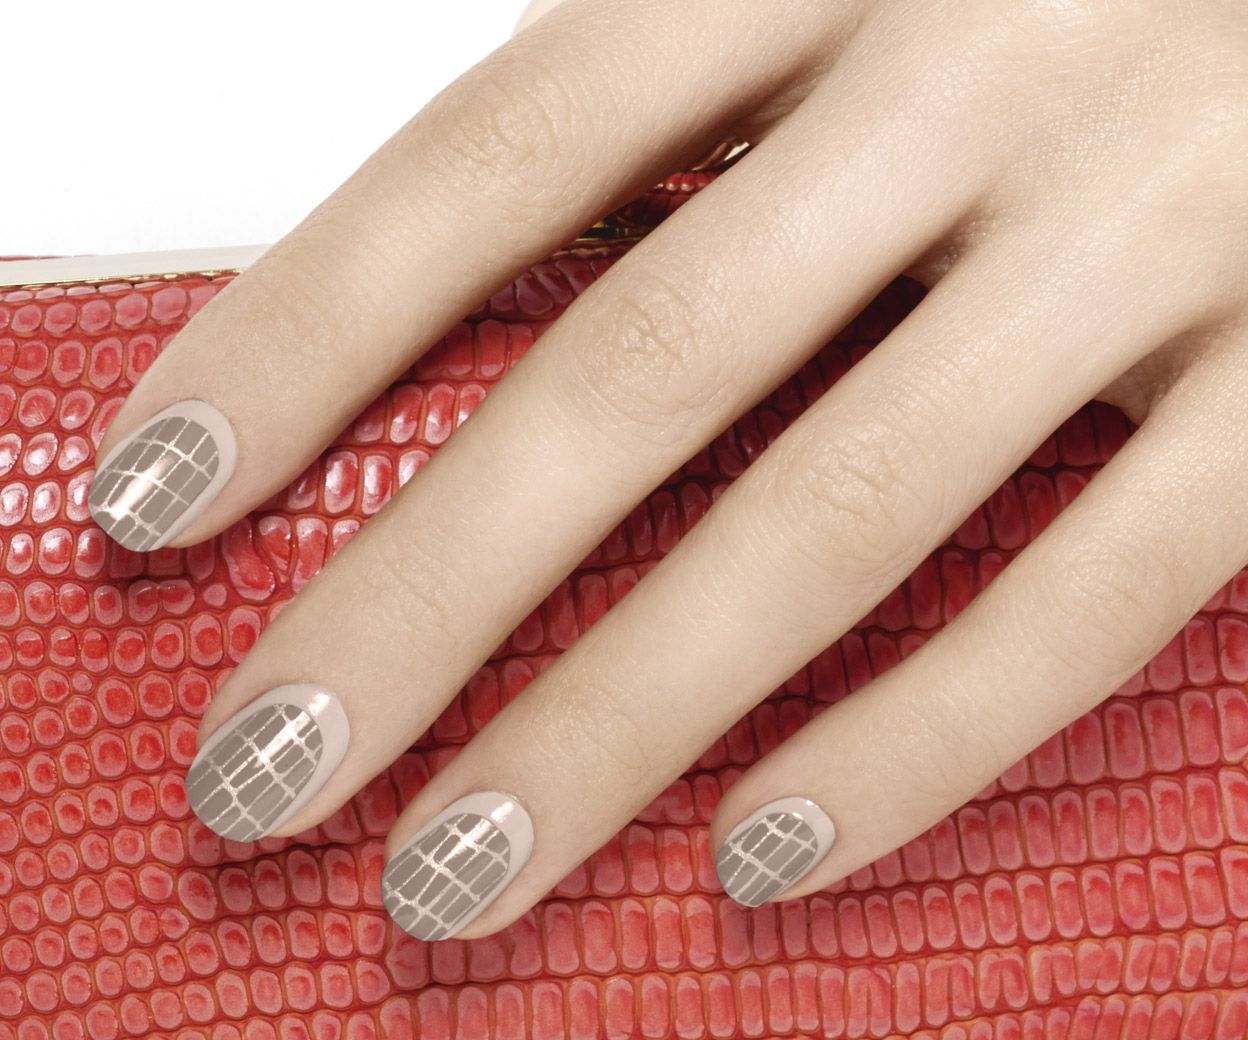 croc clutch - essie looks | Nails | Pinterest | Nail stripes ...